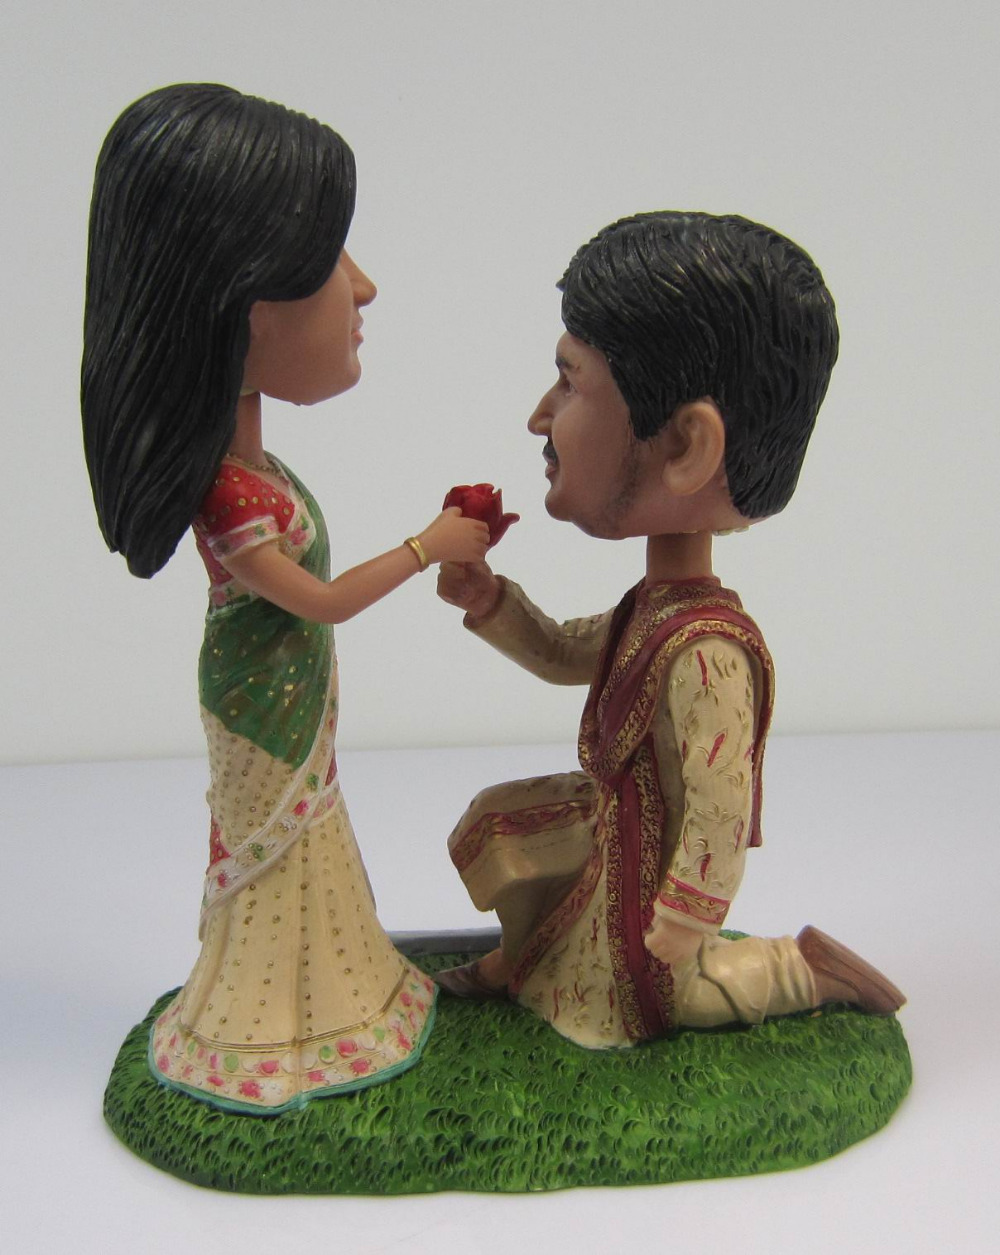 Fedex free shipping personalized bobblehead doll india propose fedex free shipping personalized bobblehead doll india propose wedding gift wedding decoration polyresin in cake decorating supplies from home garden on junglespirit